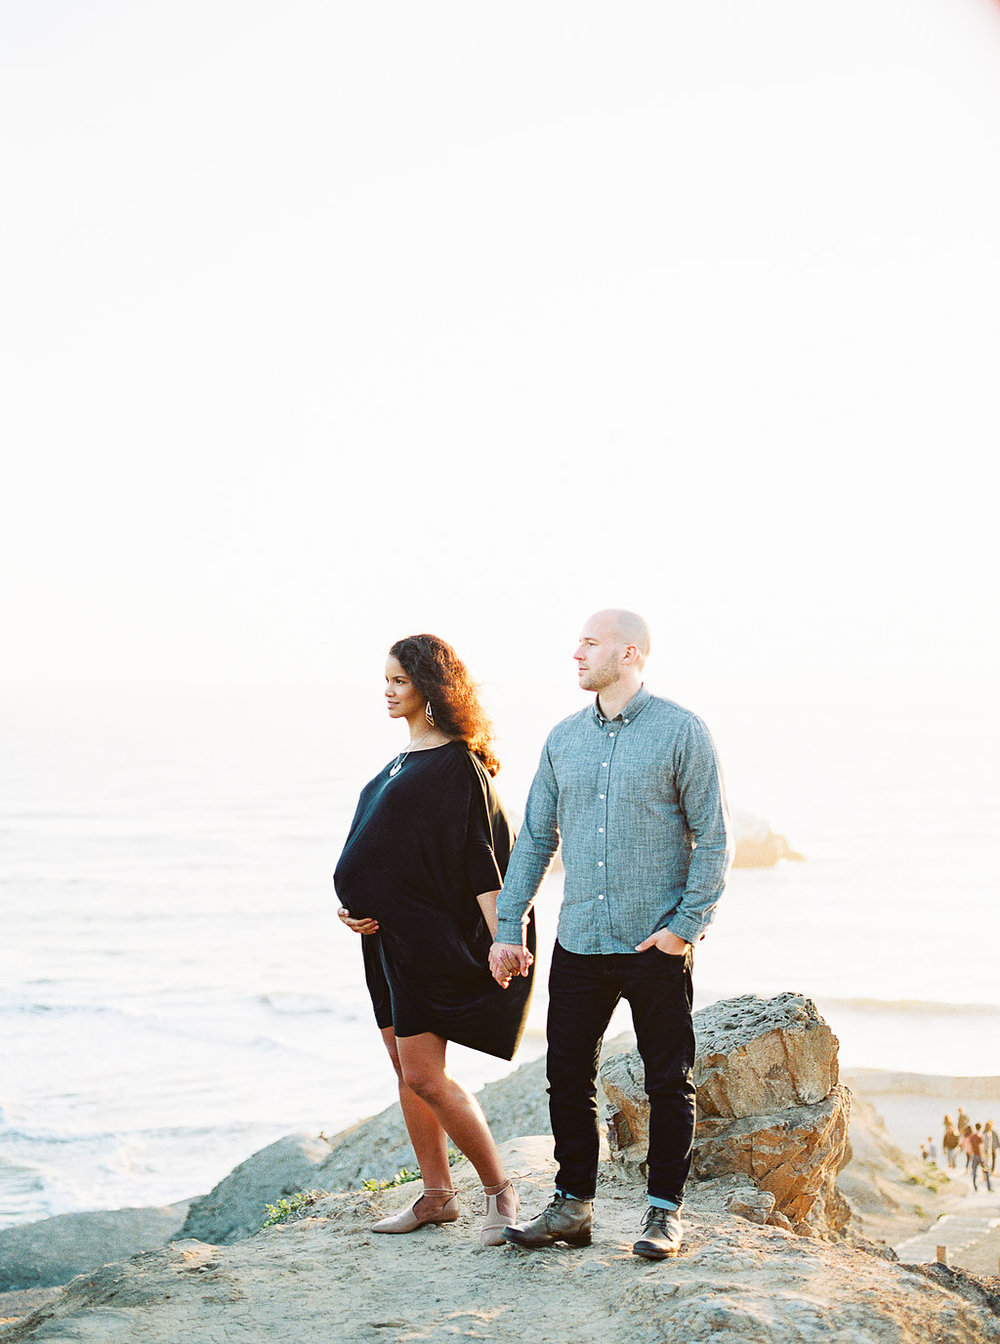 San Fransisco wedding photographer Kibogo Photographer | maternity photos in SF 30.JPG